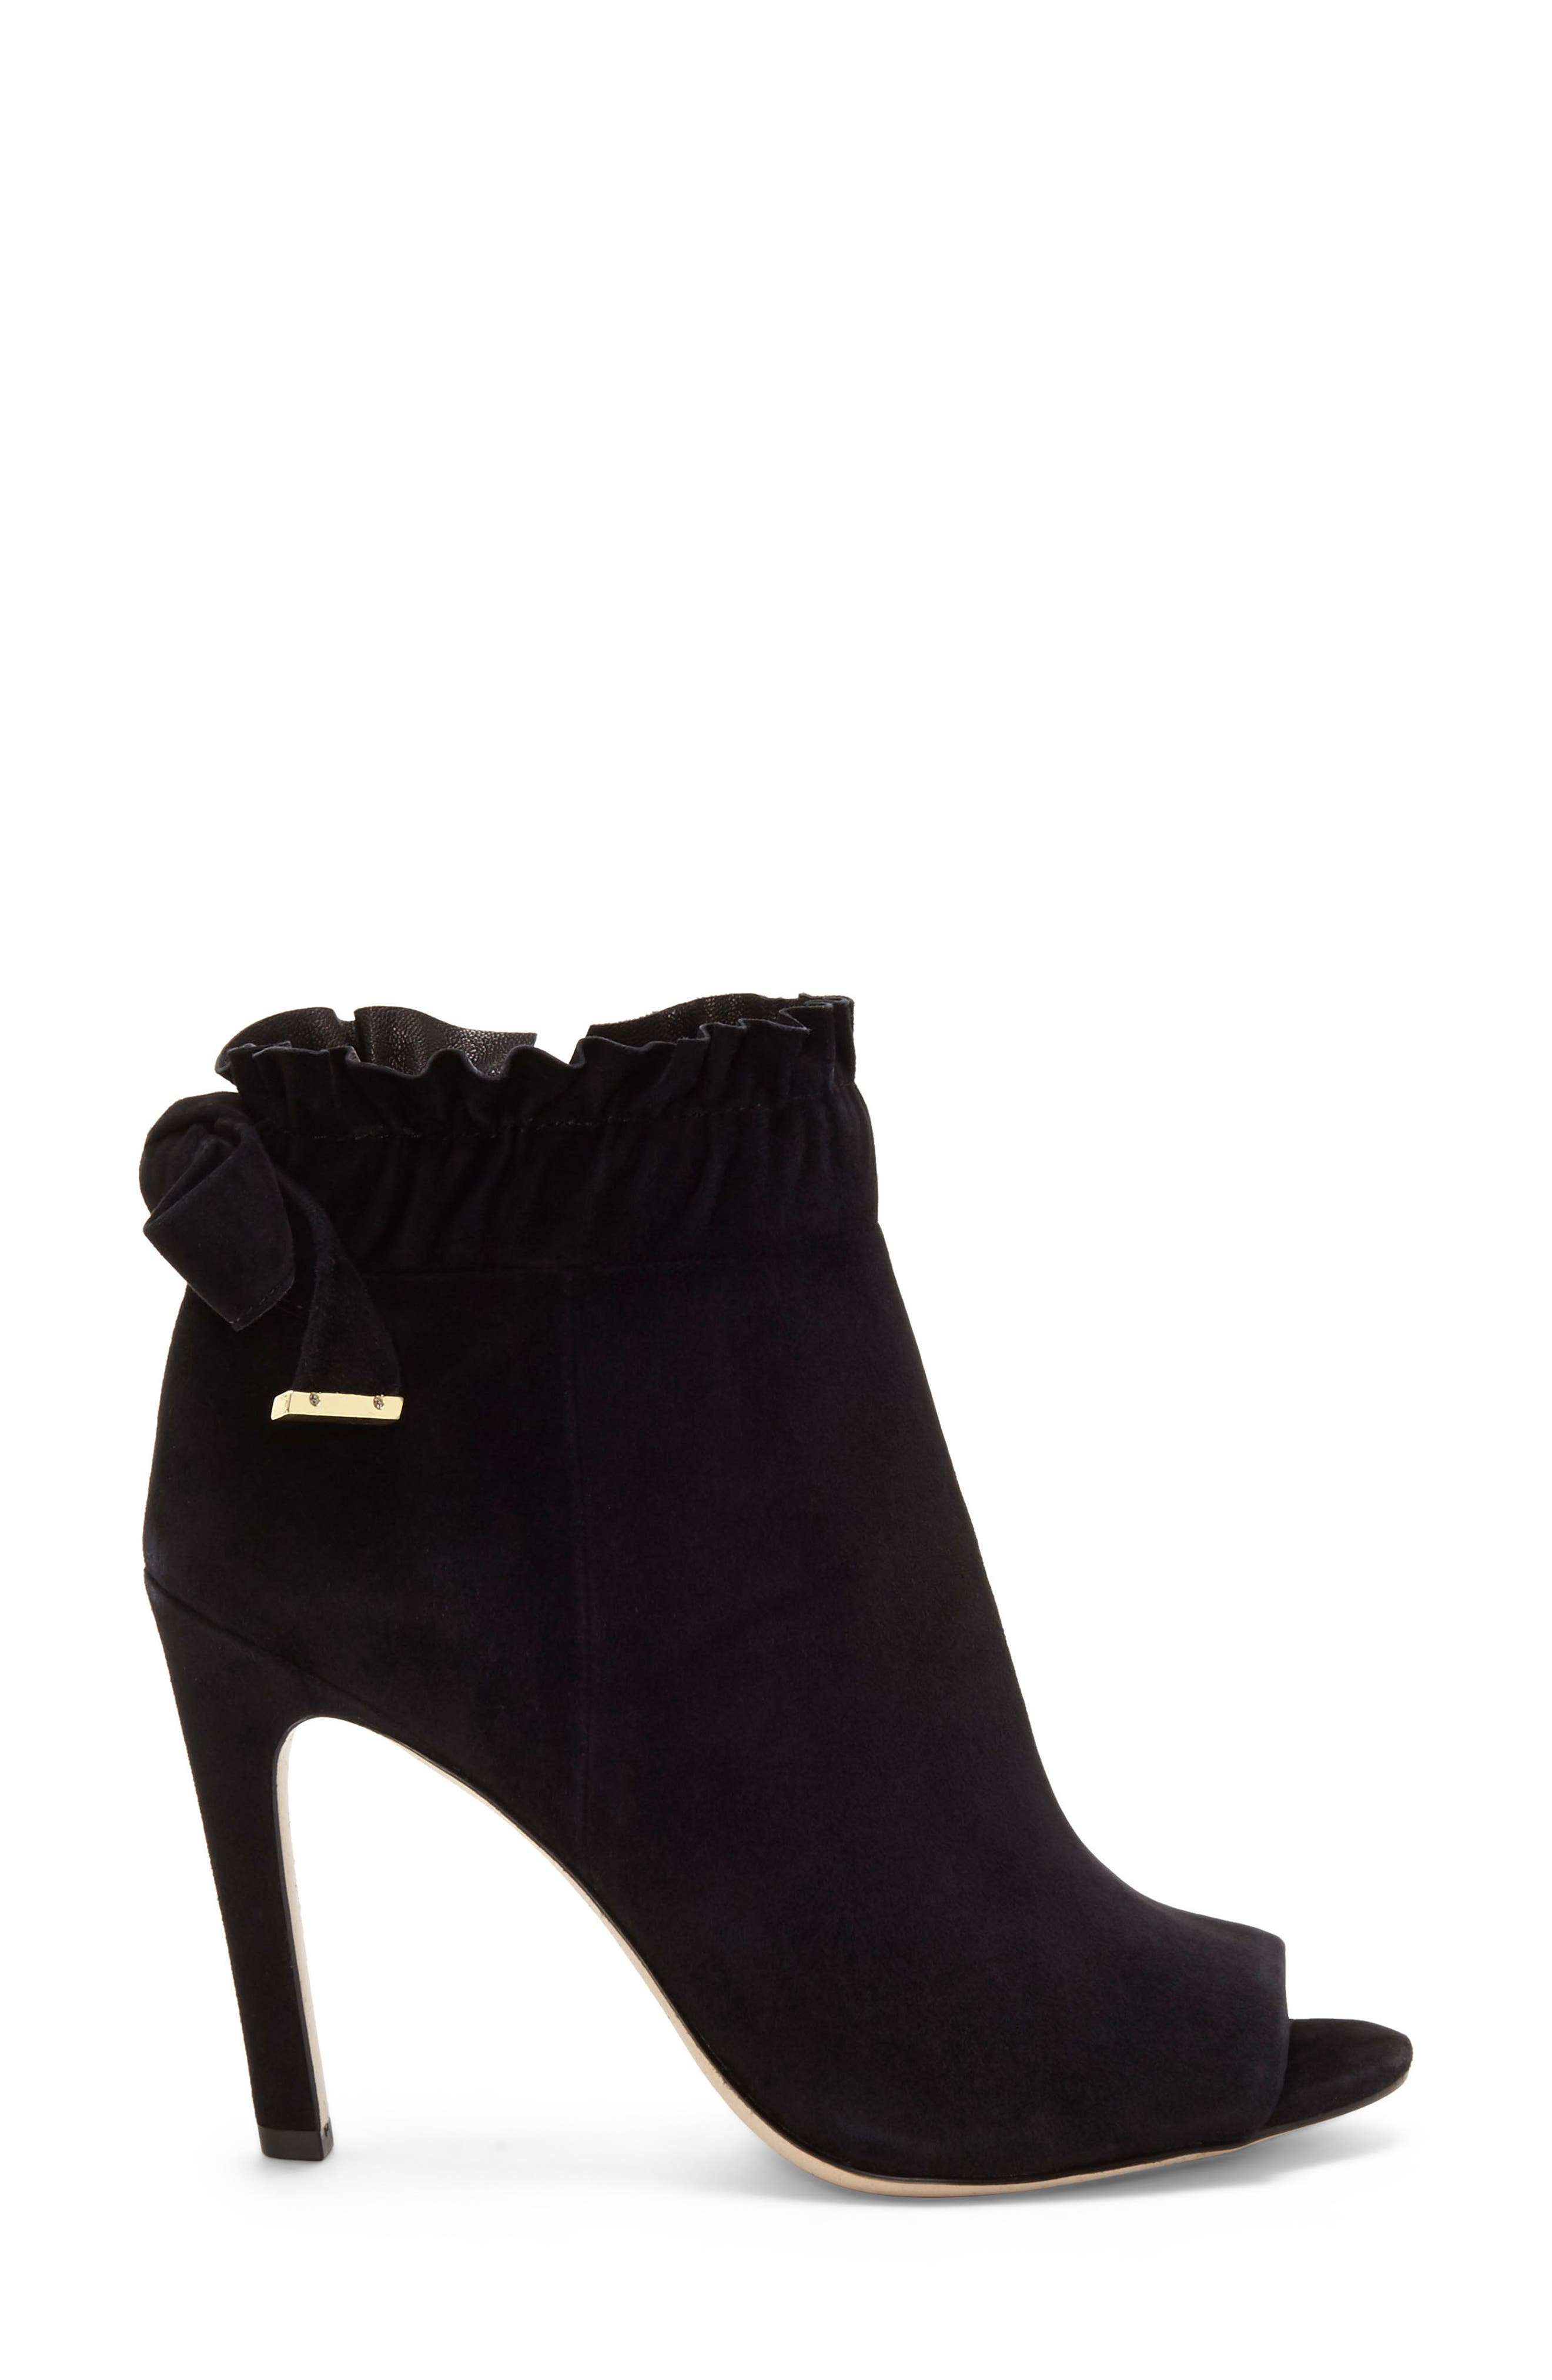 LOUISE ET CIE,                             Innay Peep Toe Bootie,                             Alternate thumbnail 3, color,                             001